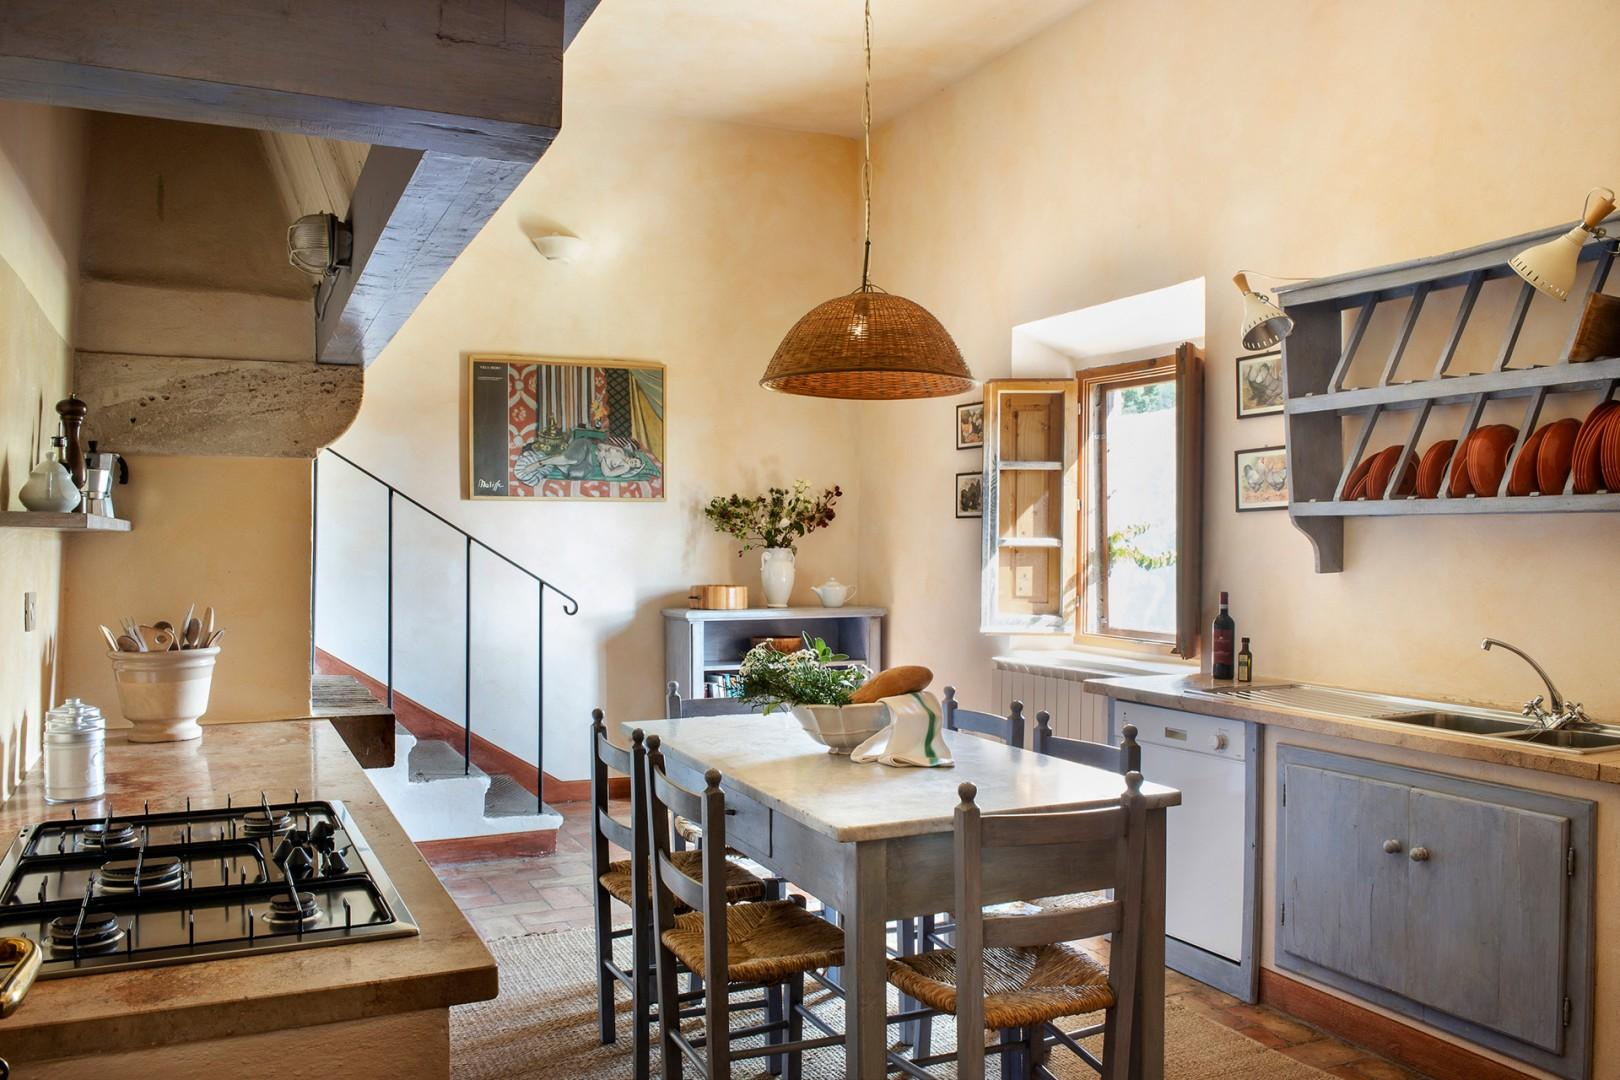 Eat-in country kitchen with a dining table seating 6.